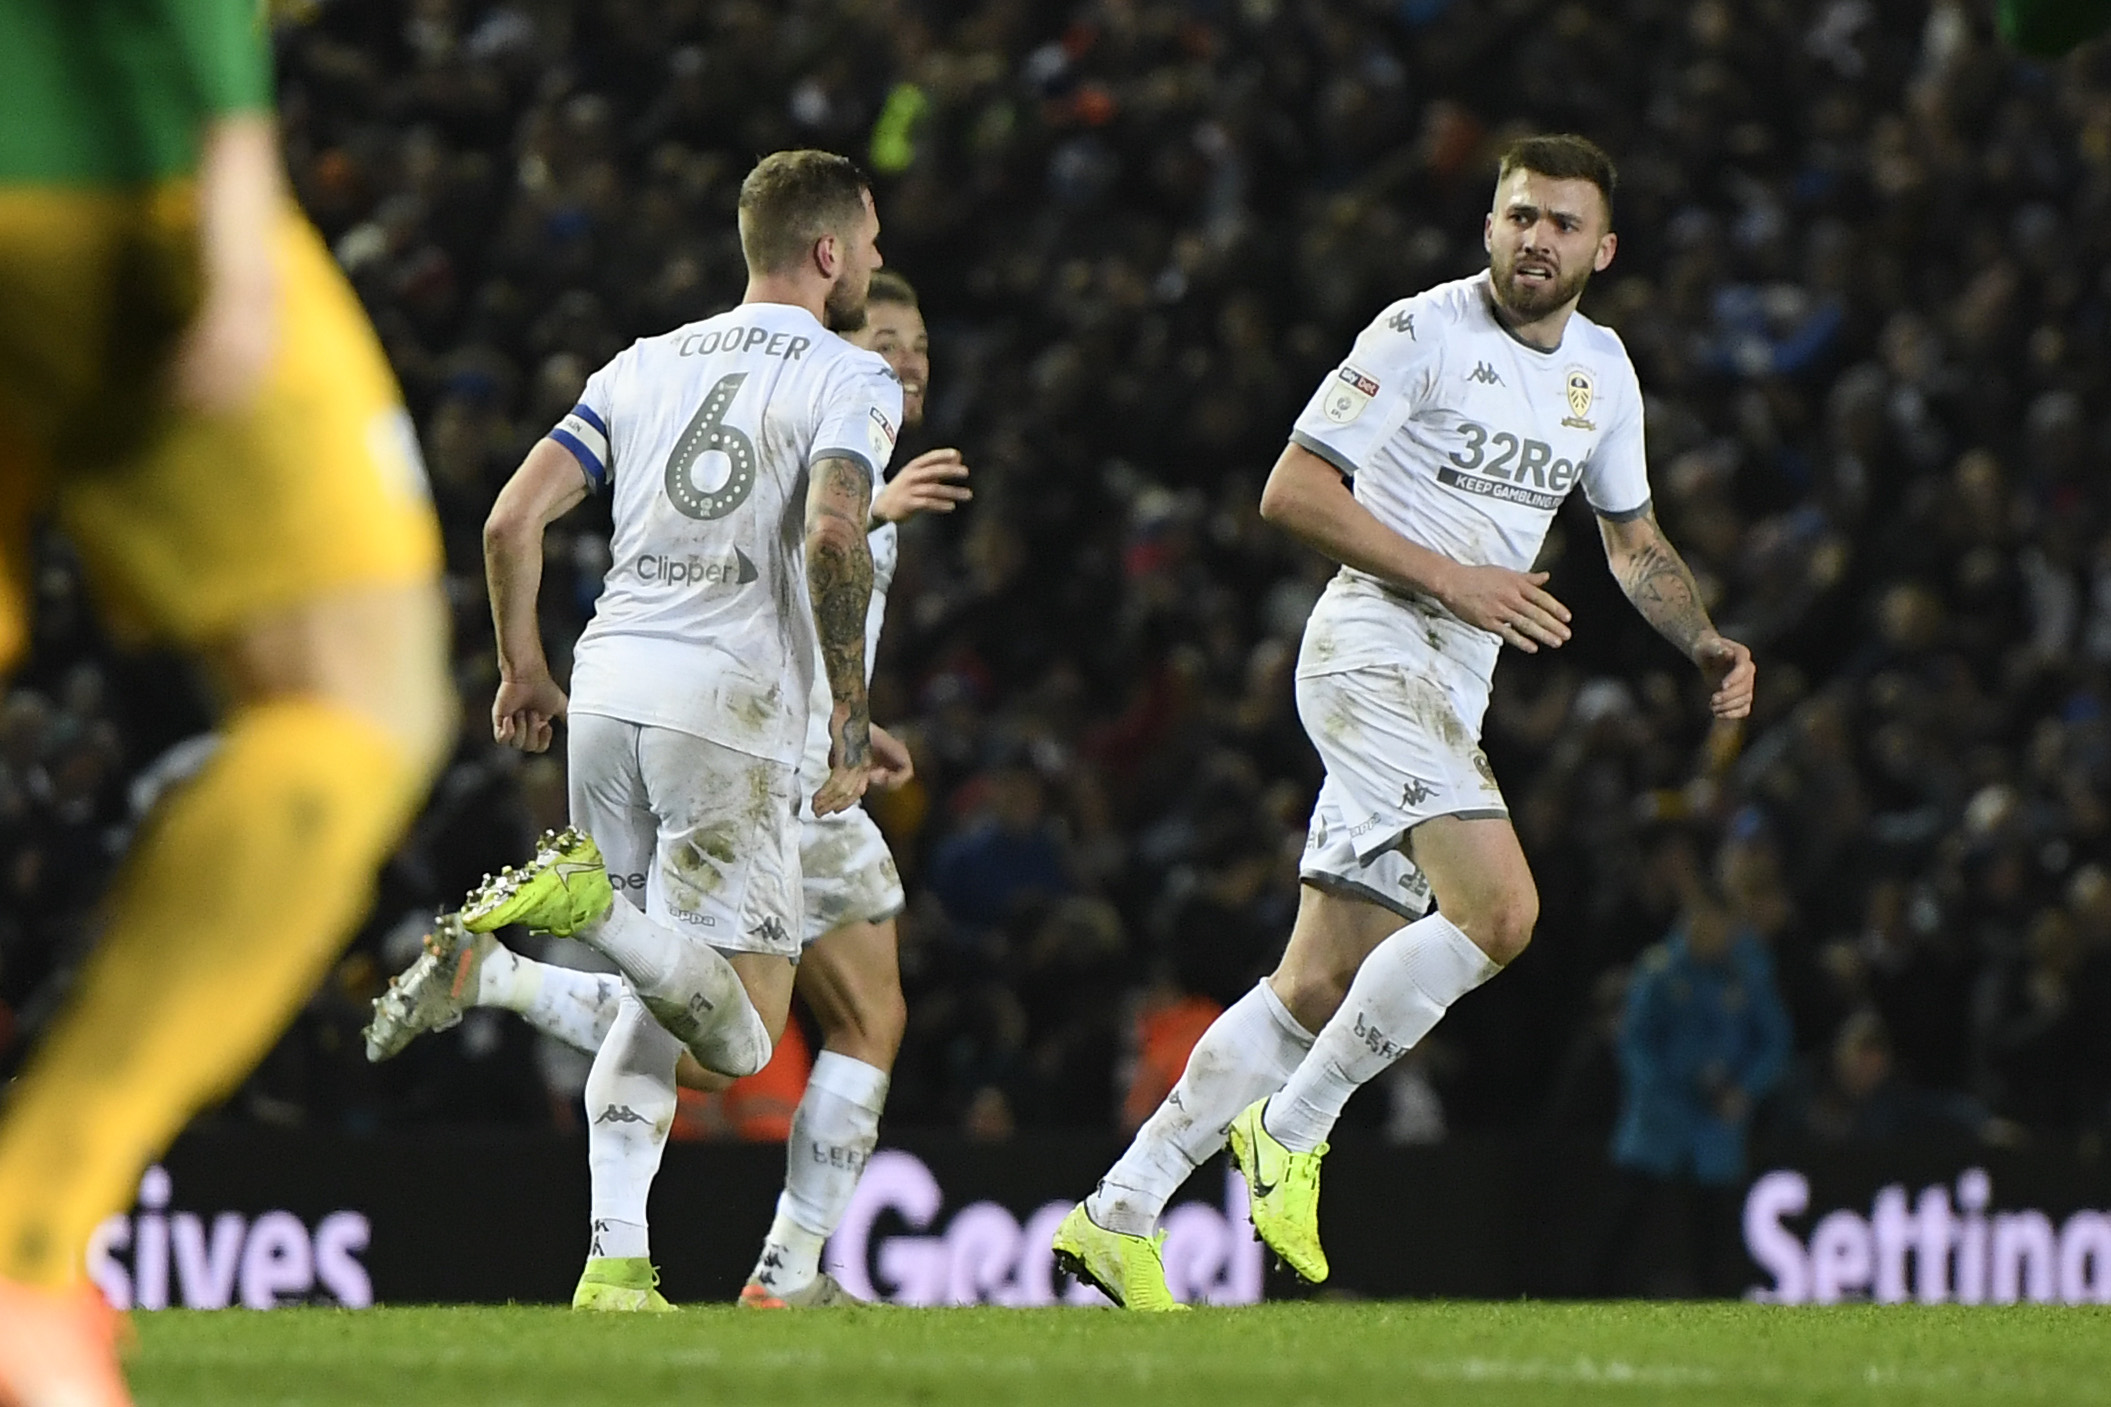 Leeds United v Preston North End - Sky Bet Championship